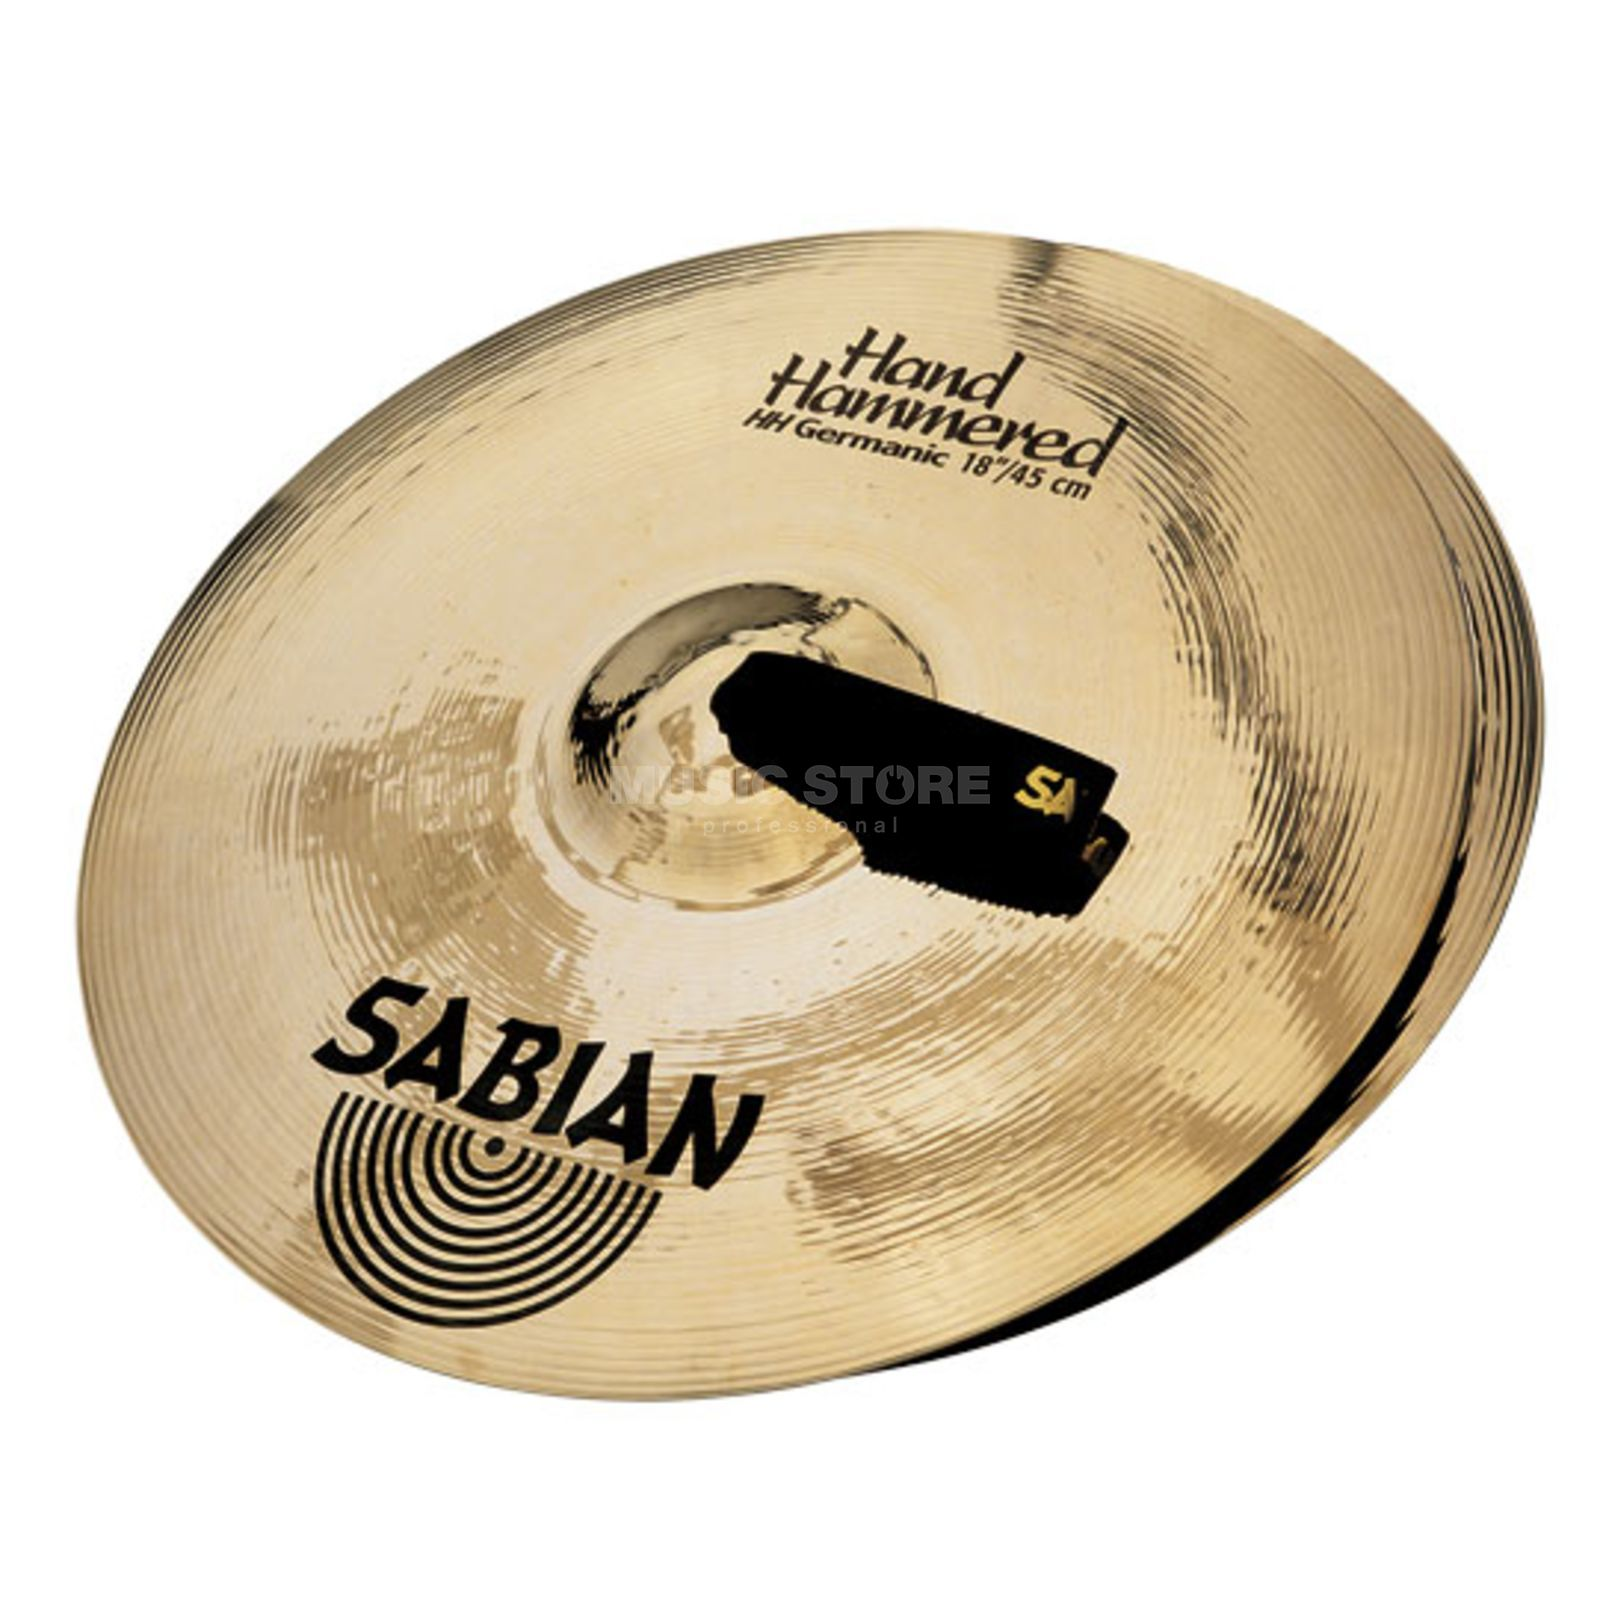 "Sabian HH Orchestra Cymbals 18"", Heavy, Germanic Produktbillede"